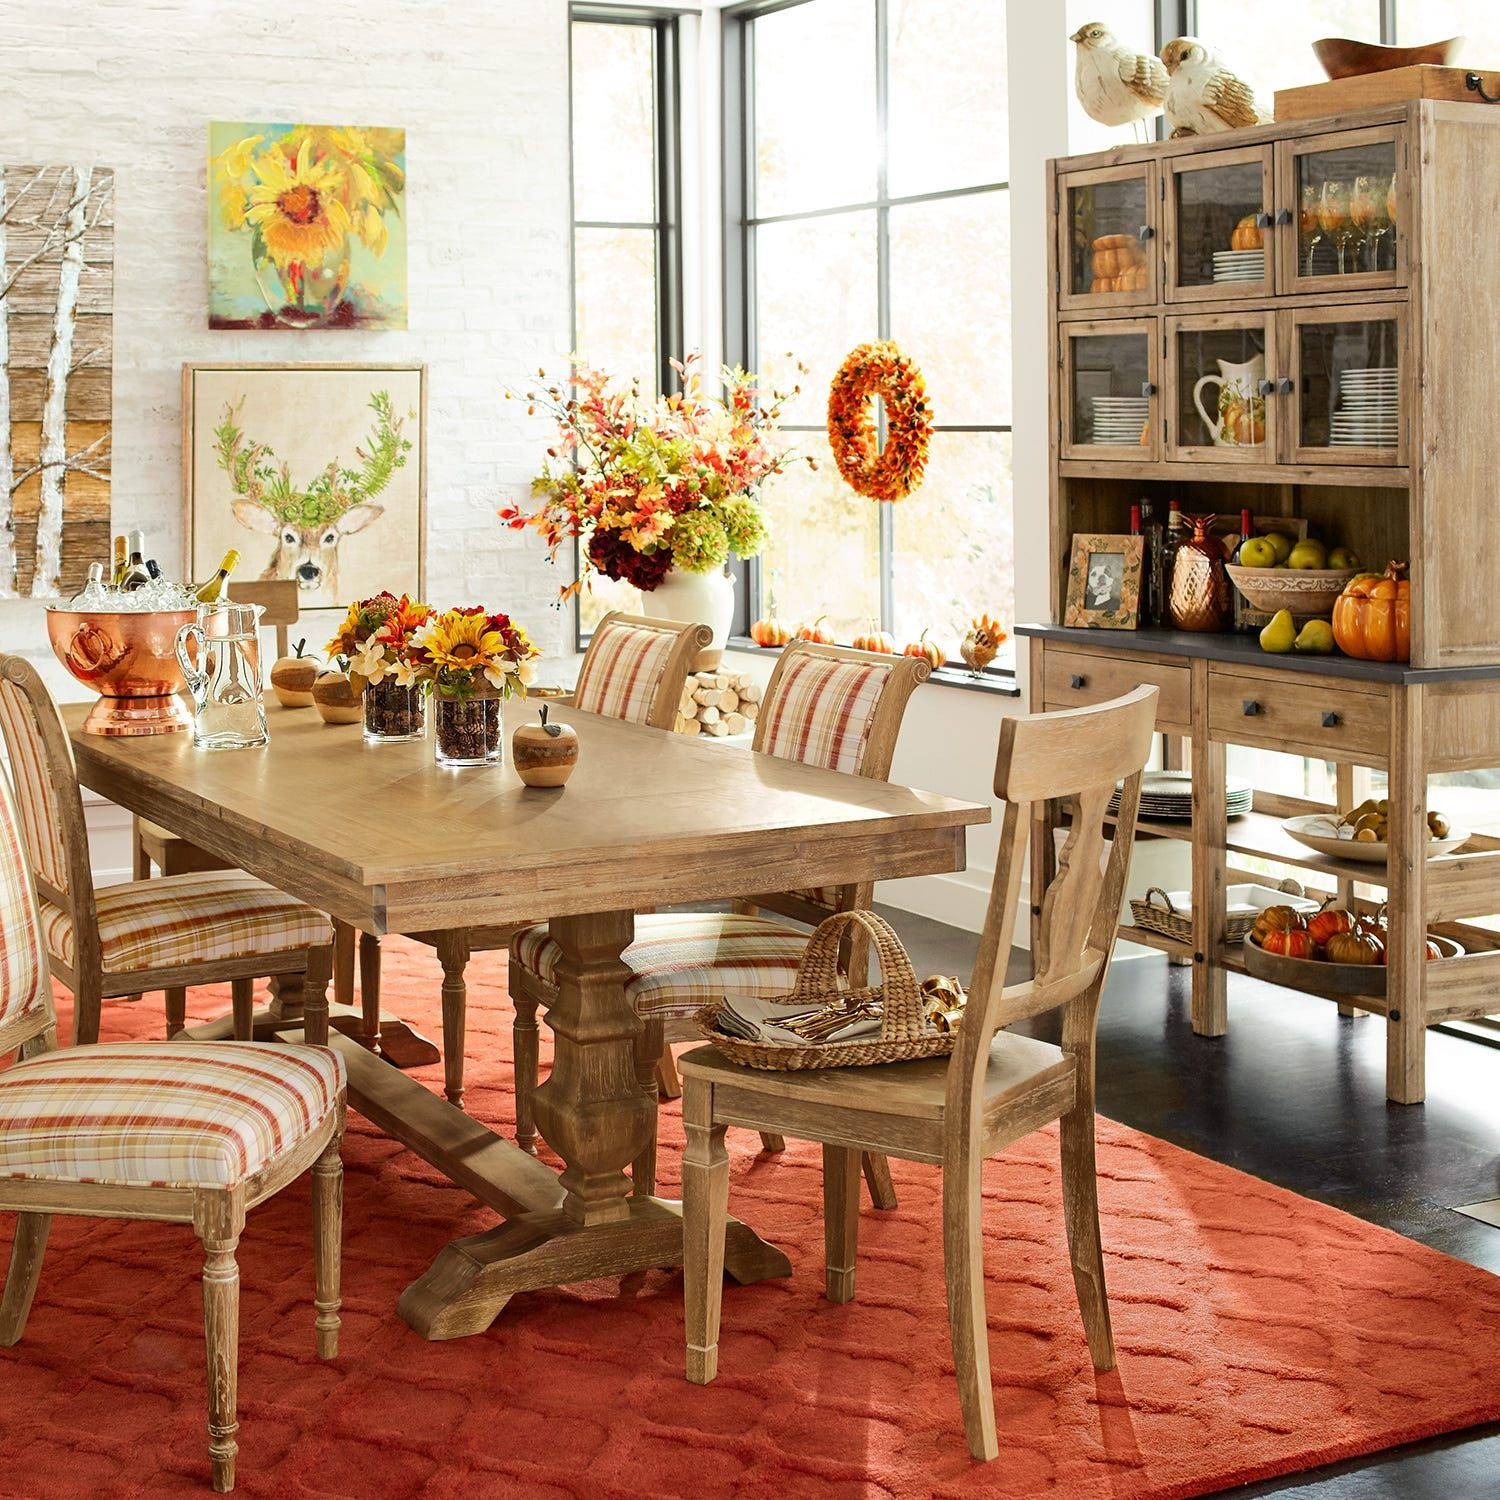 Bradding Natural Stonewash Dining Tables Pier 1 Dining